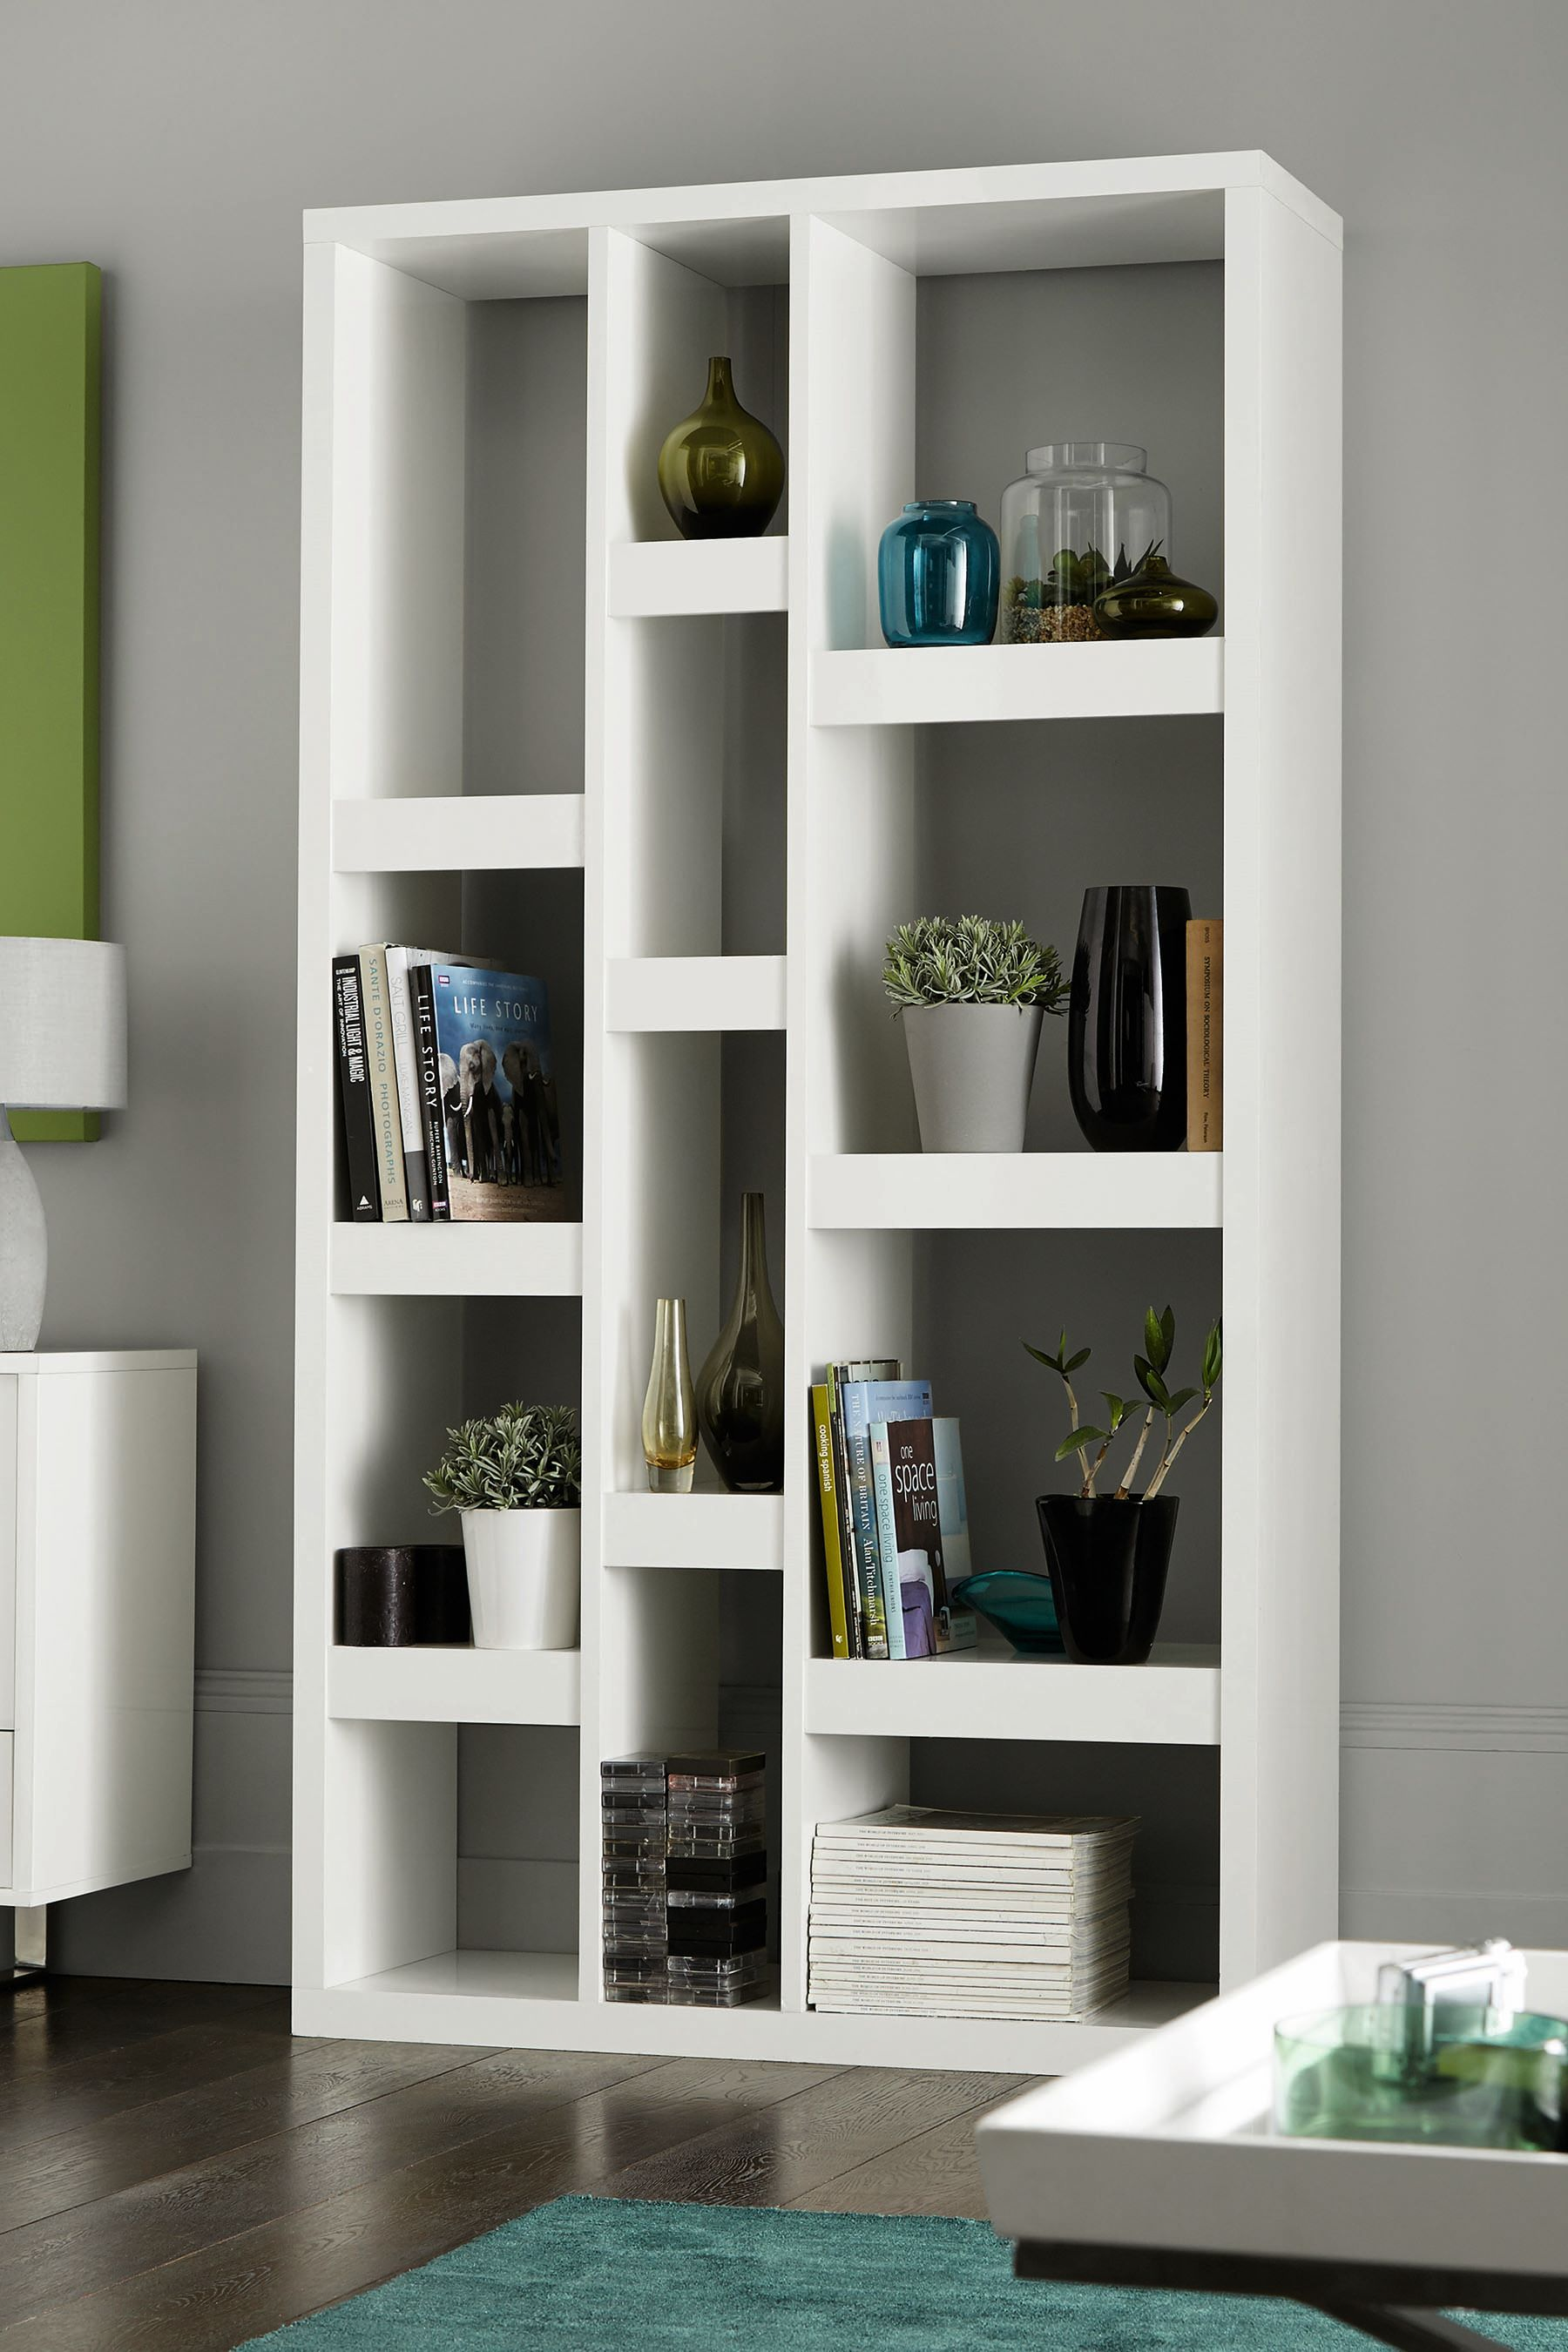 Next Logan Tall Shelves White Tall Shelves Shelves Bookcases Uk